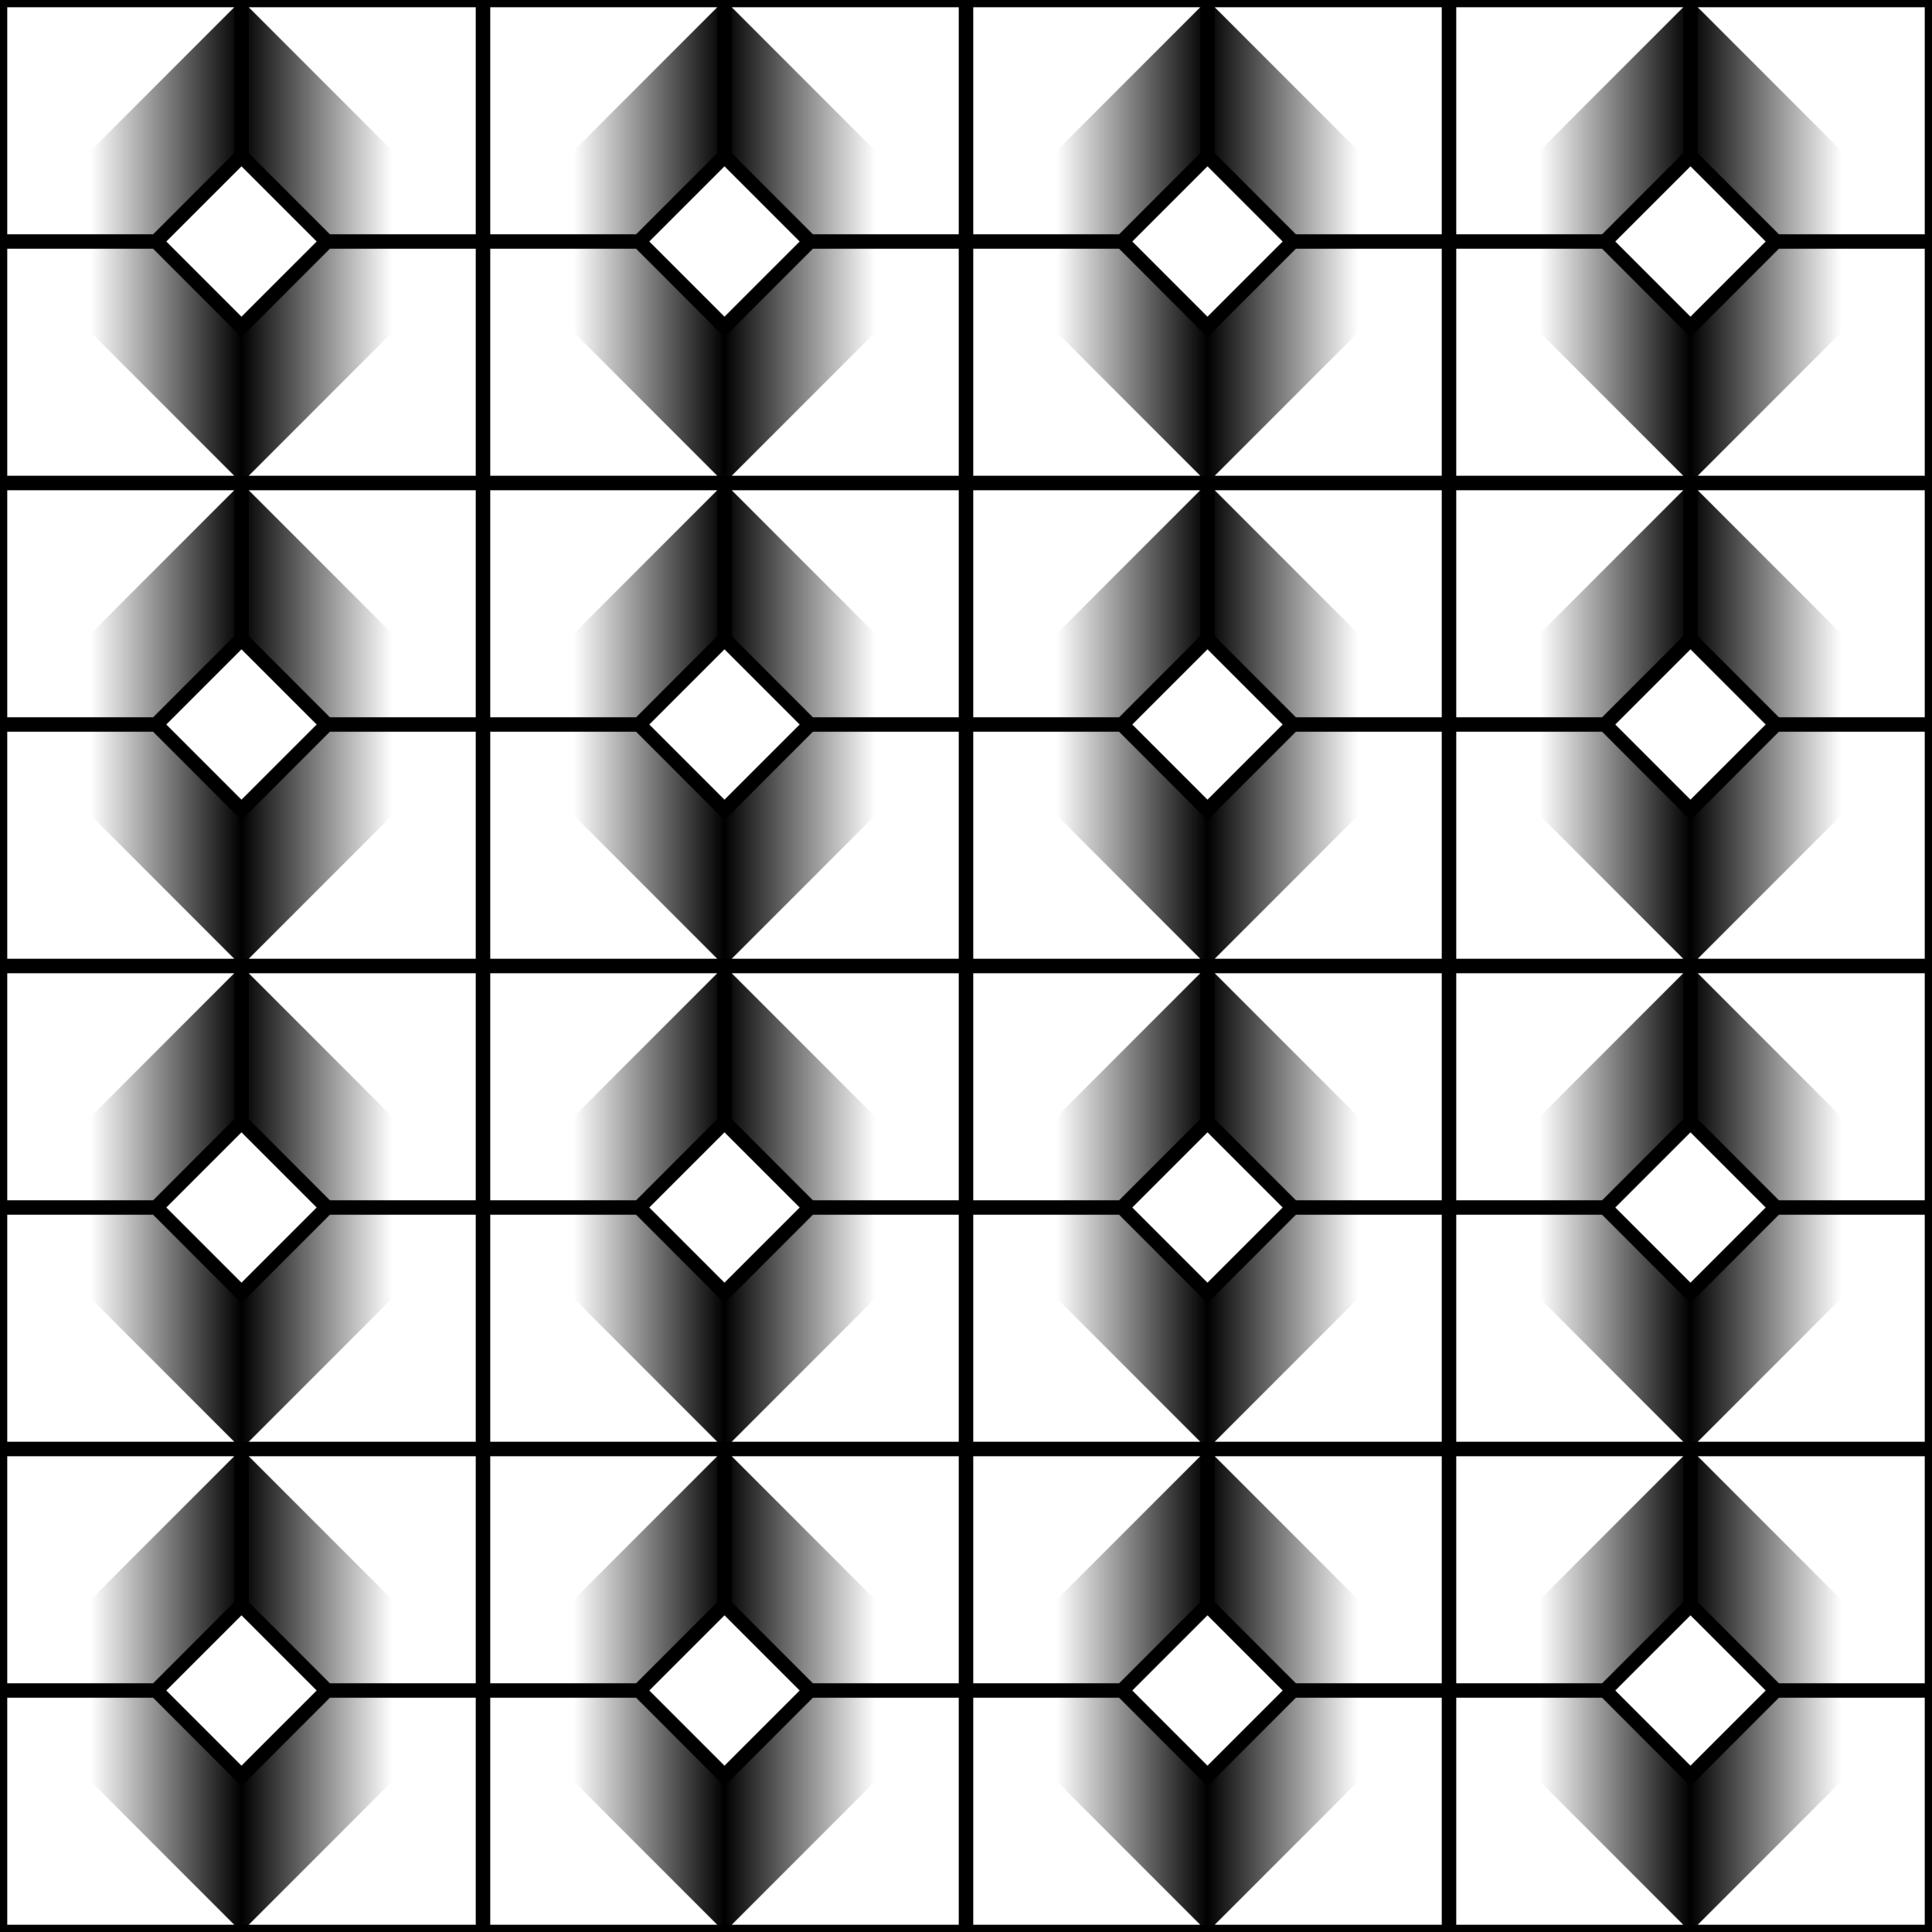 BYC_TILE_GEO_07.png